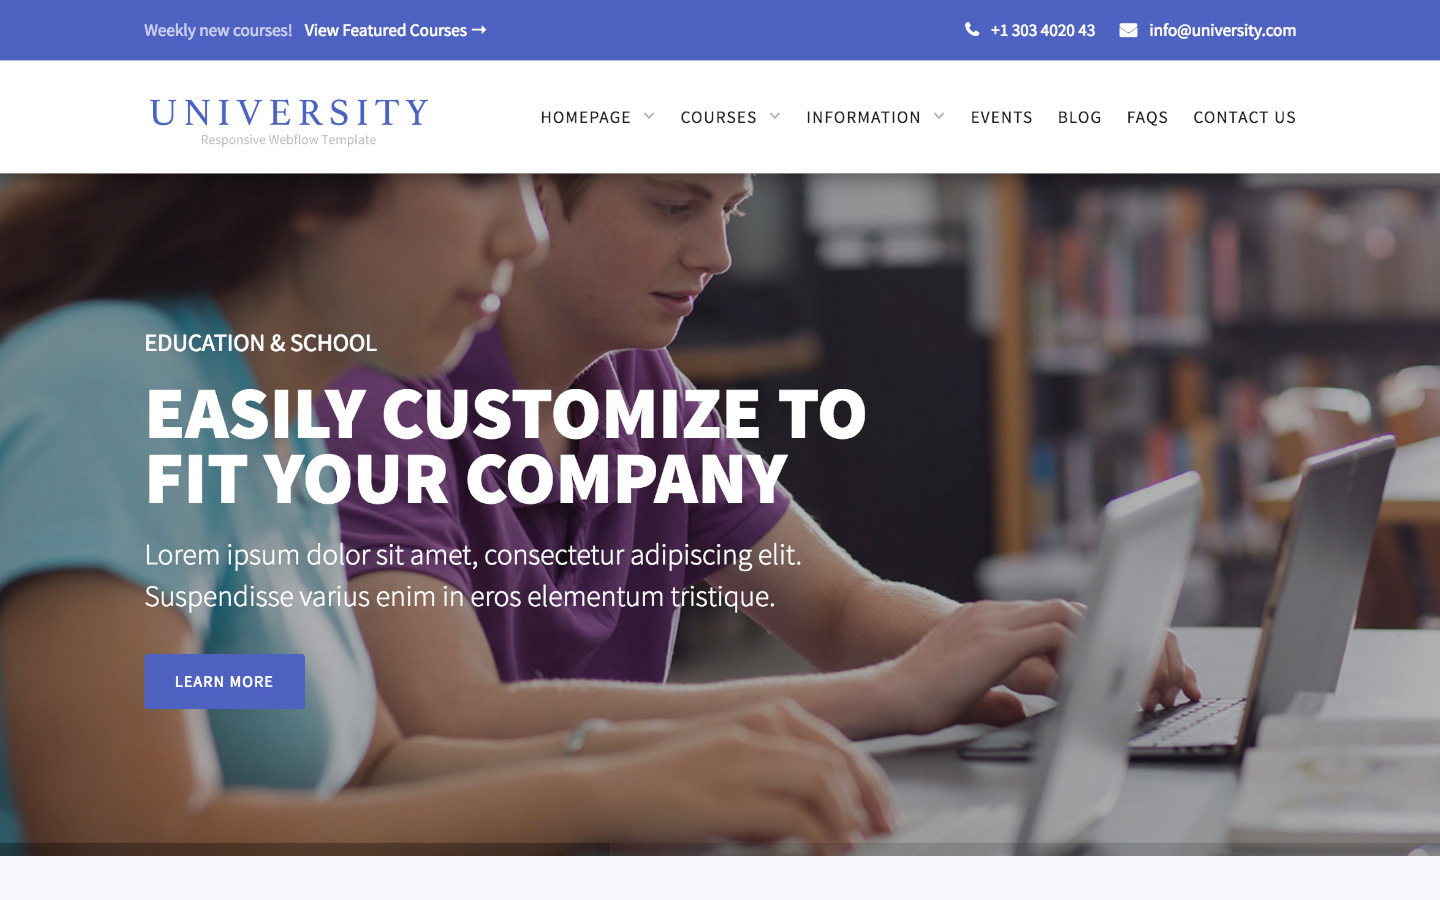 University education cms website template